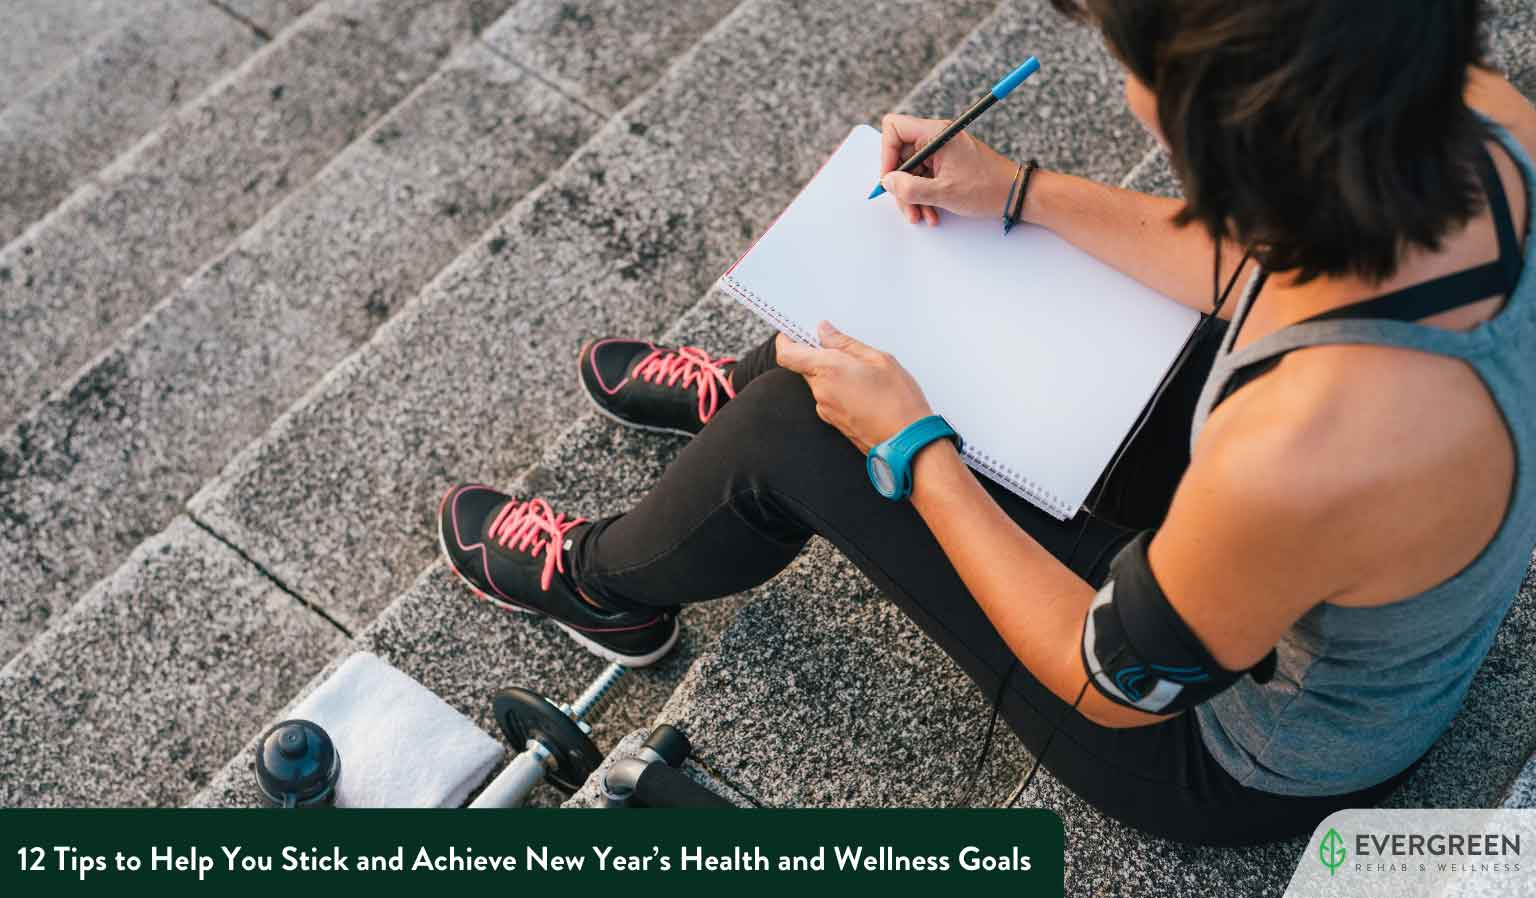 12 Tips to Help You Stick and Achieve New Year's Health and Wellness Goals